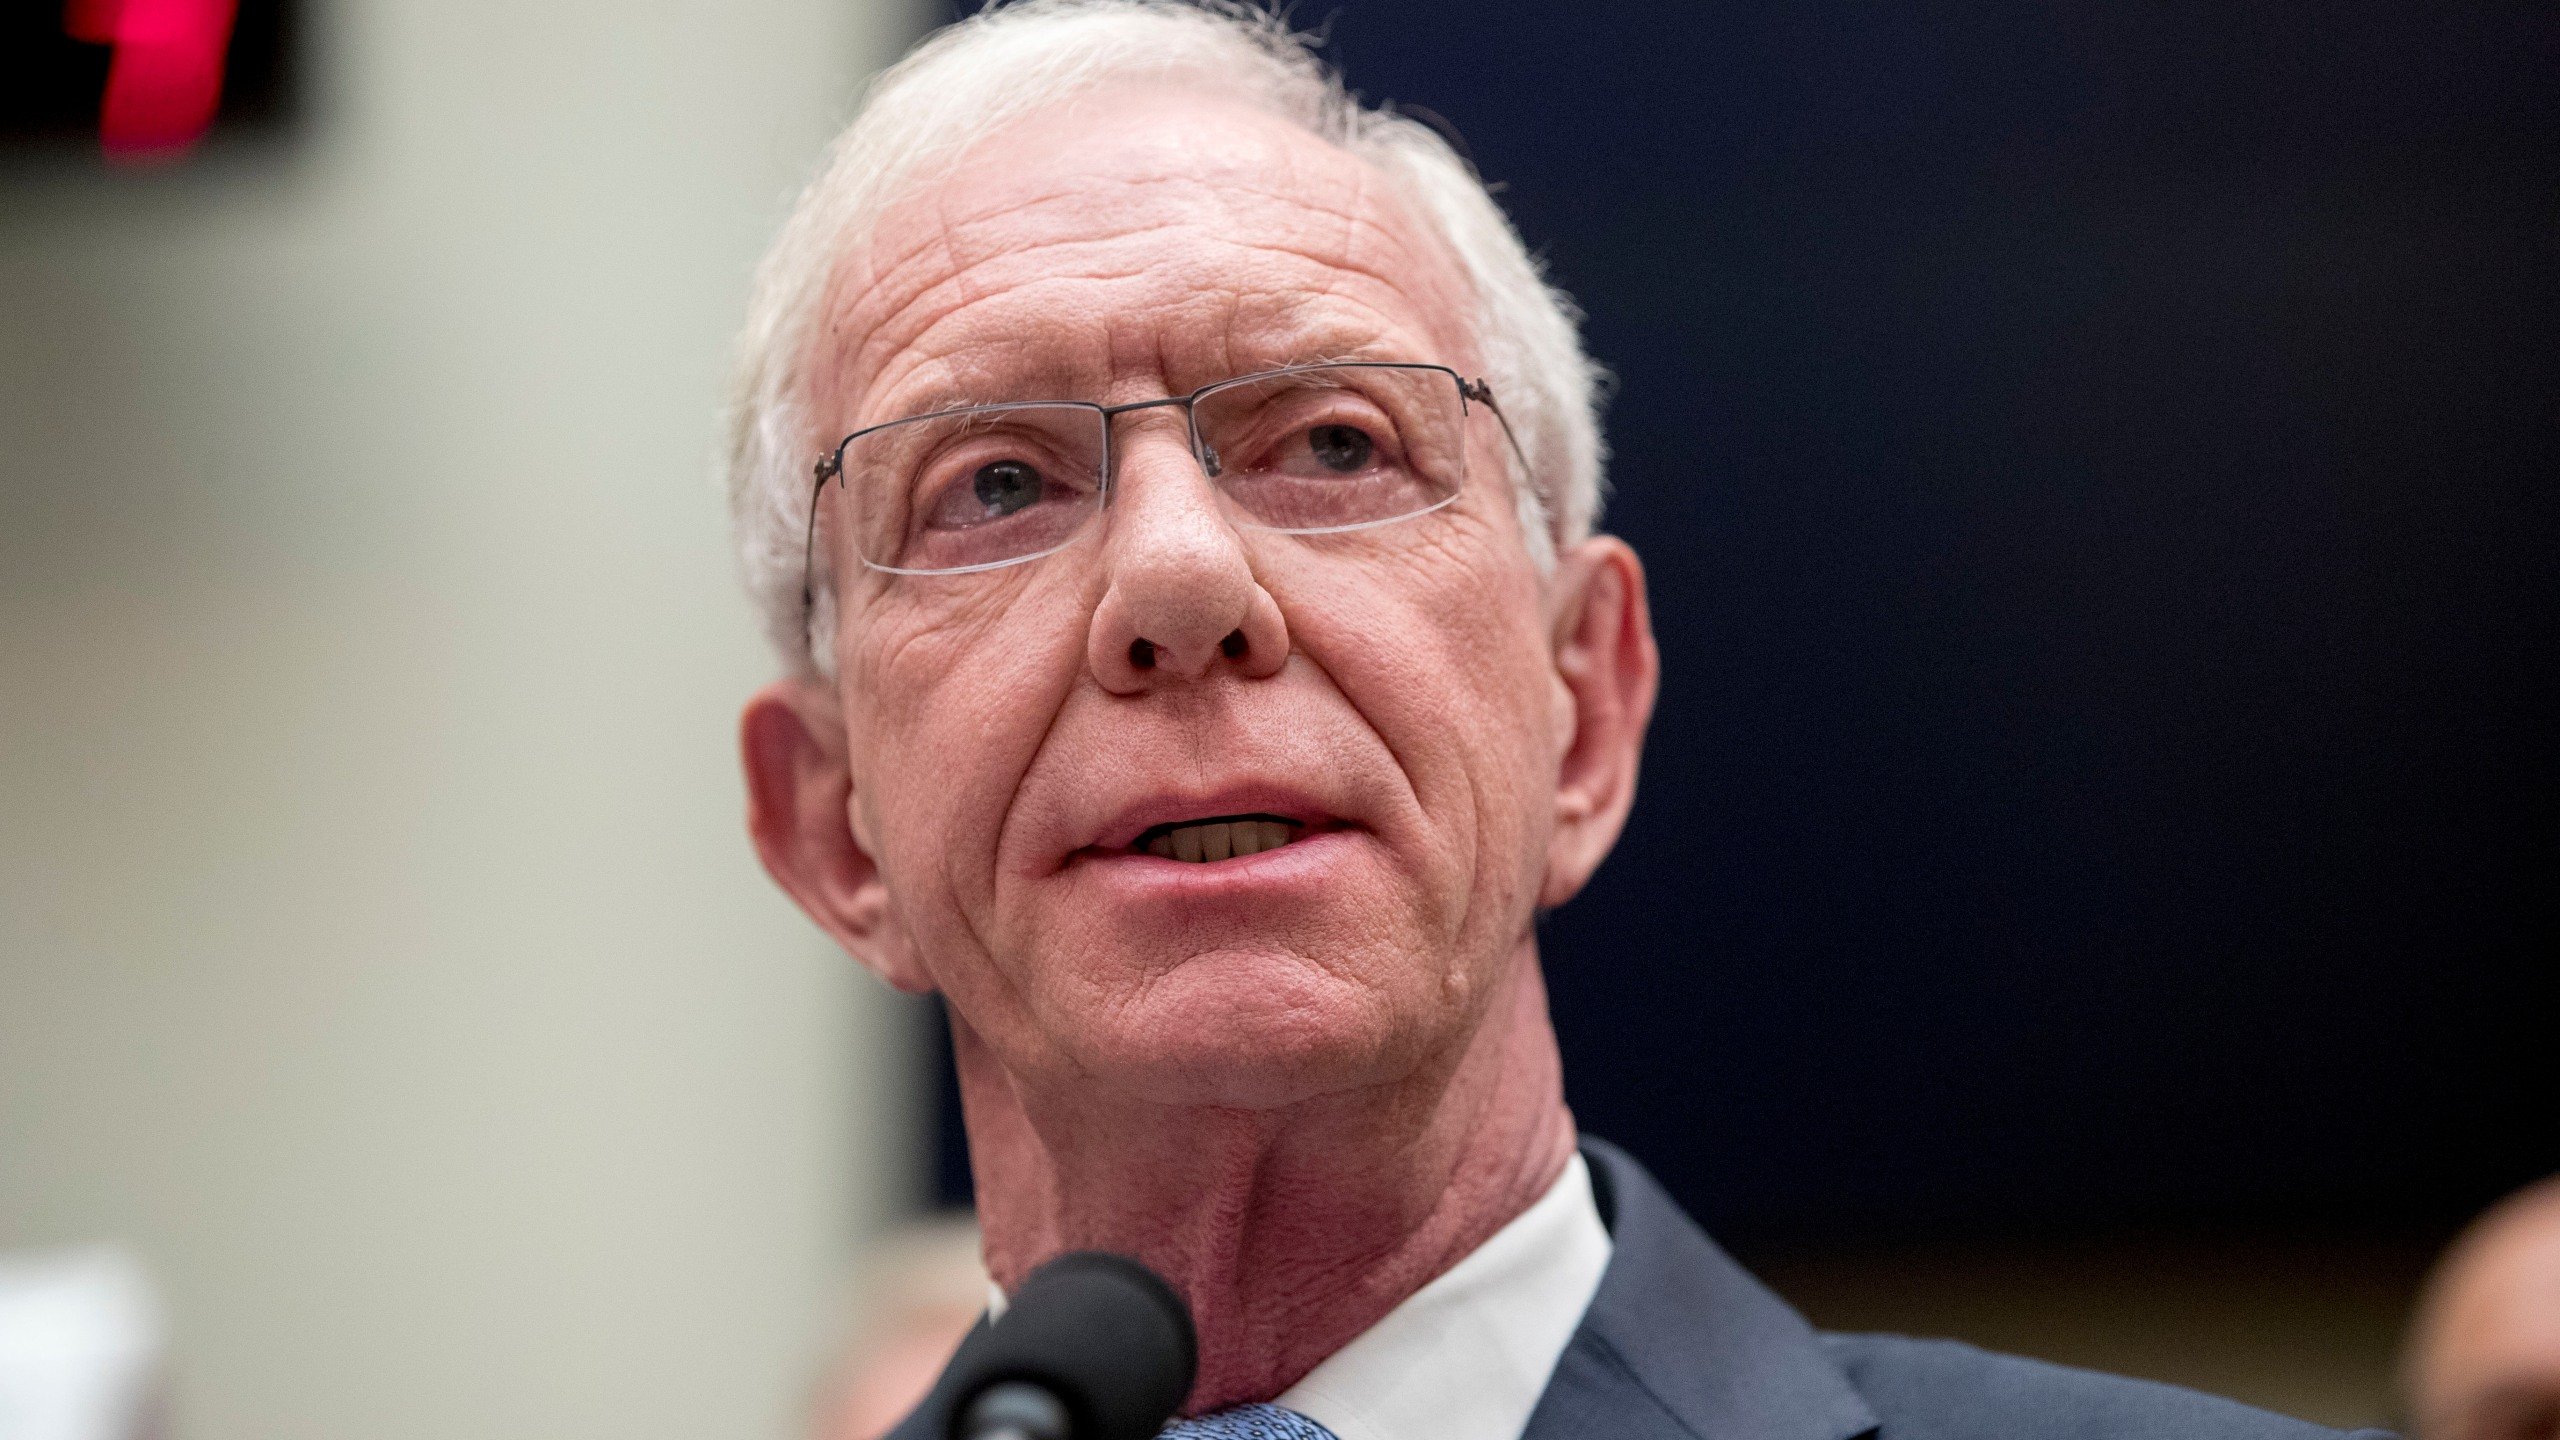 """In this June 19, 2019, file photo, Chesley """"Sully"""" Sullenberger speaks during a House Committee on Transportation and Infrastructure hearing on Capitol Hill in Washington. President Joe Biden has unveiled picks for several high-profile ambassadorial postings, turning to a group that includes career diplomats, political allies and an American aviation hero. Sullenberger has been named to serve on the Council of the International Civil Aviation Organization. (AP Photo/Andrew Harnik, File)"""